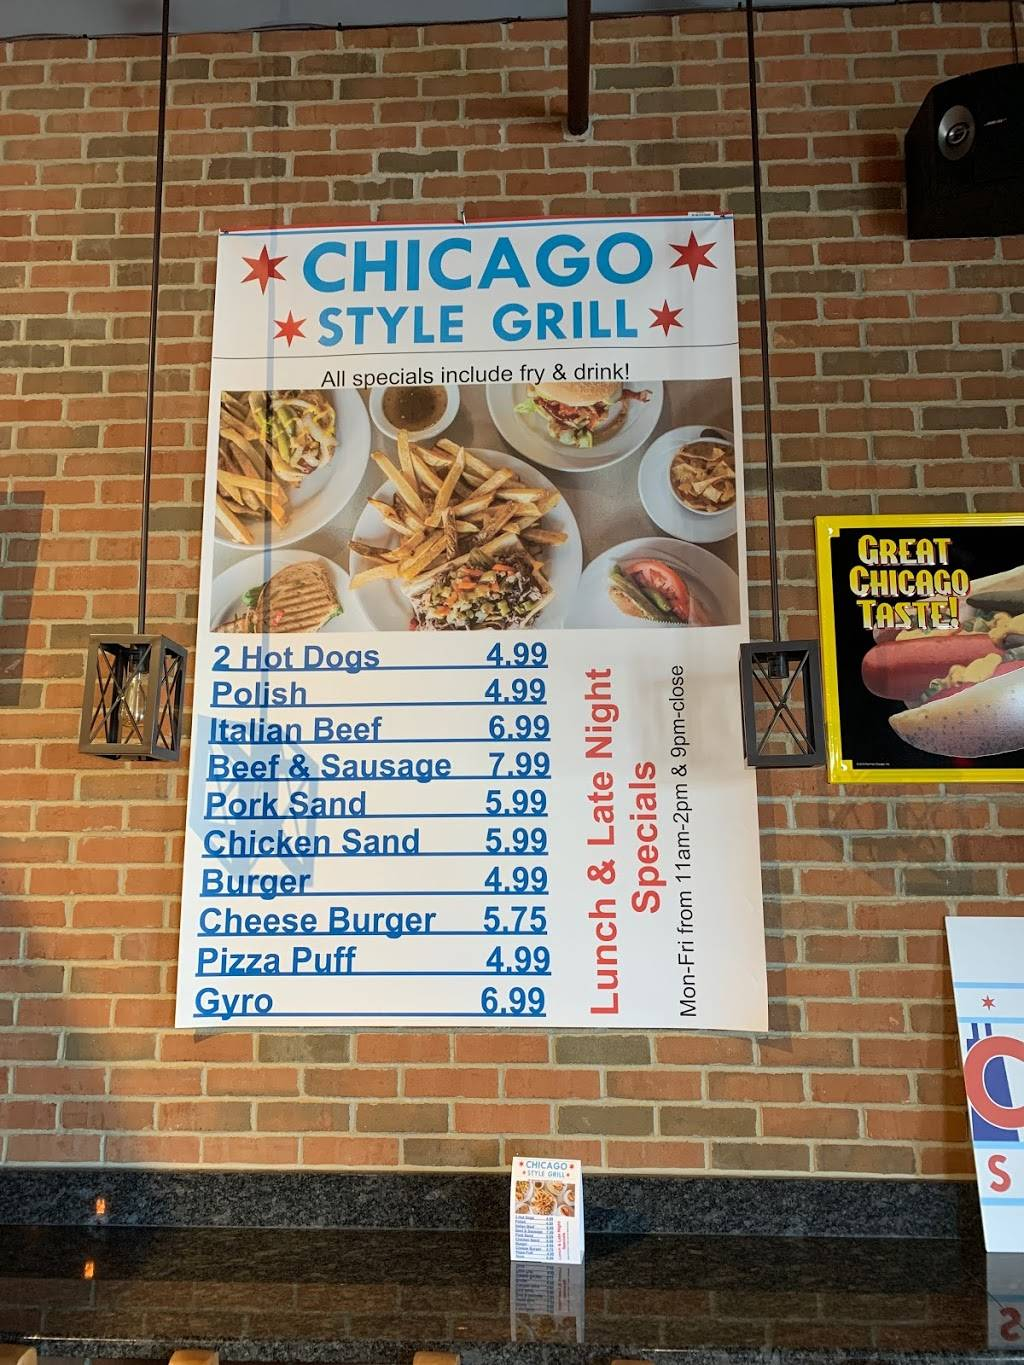 Chicago Style Grill   restaurant   20631 W Renwick Rd, Crest Hill, IL 60403, USA   8156305709 OR +1 815-630-5709